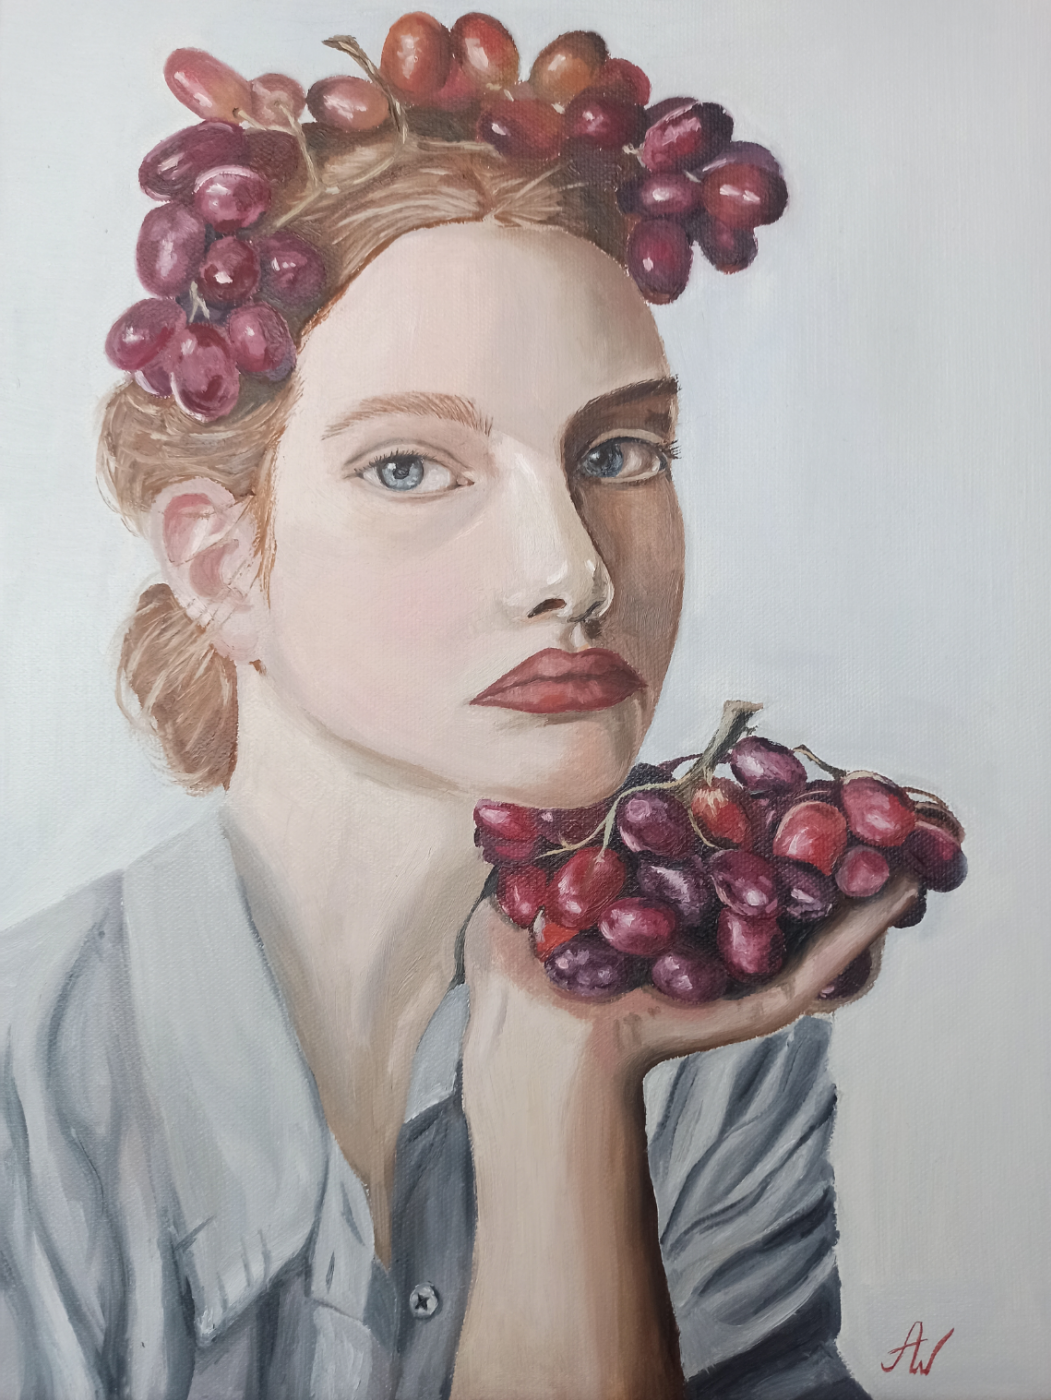 Aina Wi. Girl with grapes